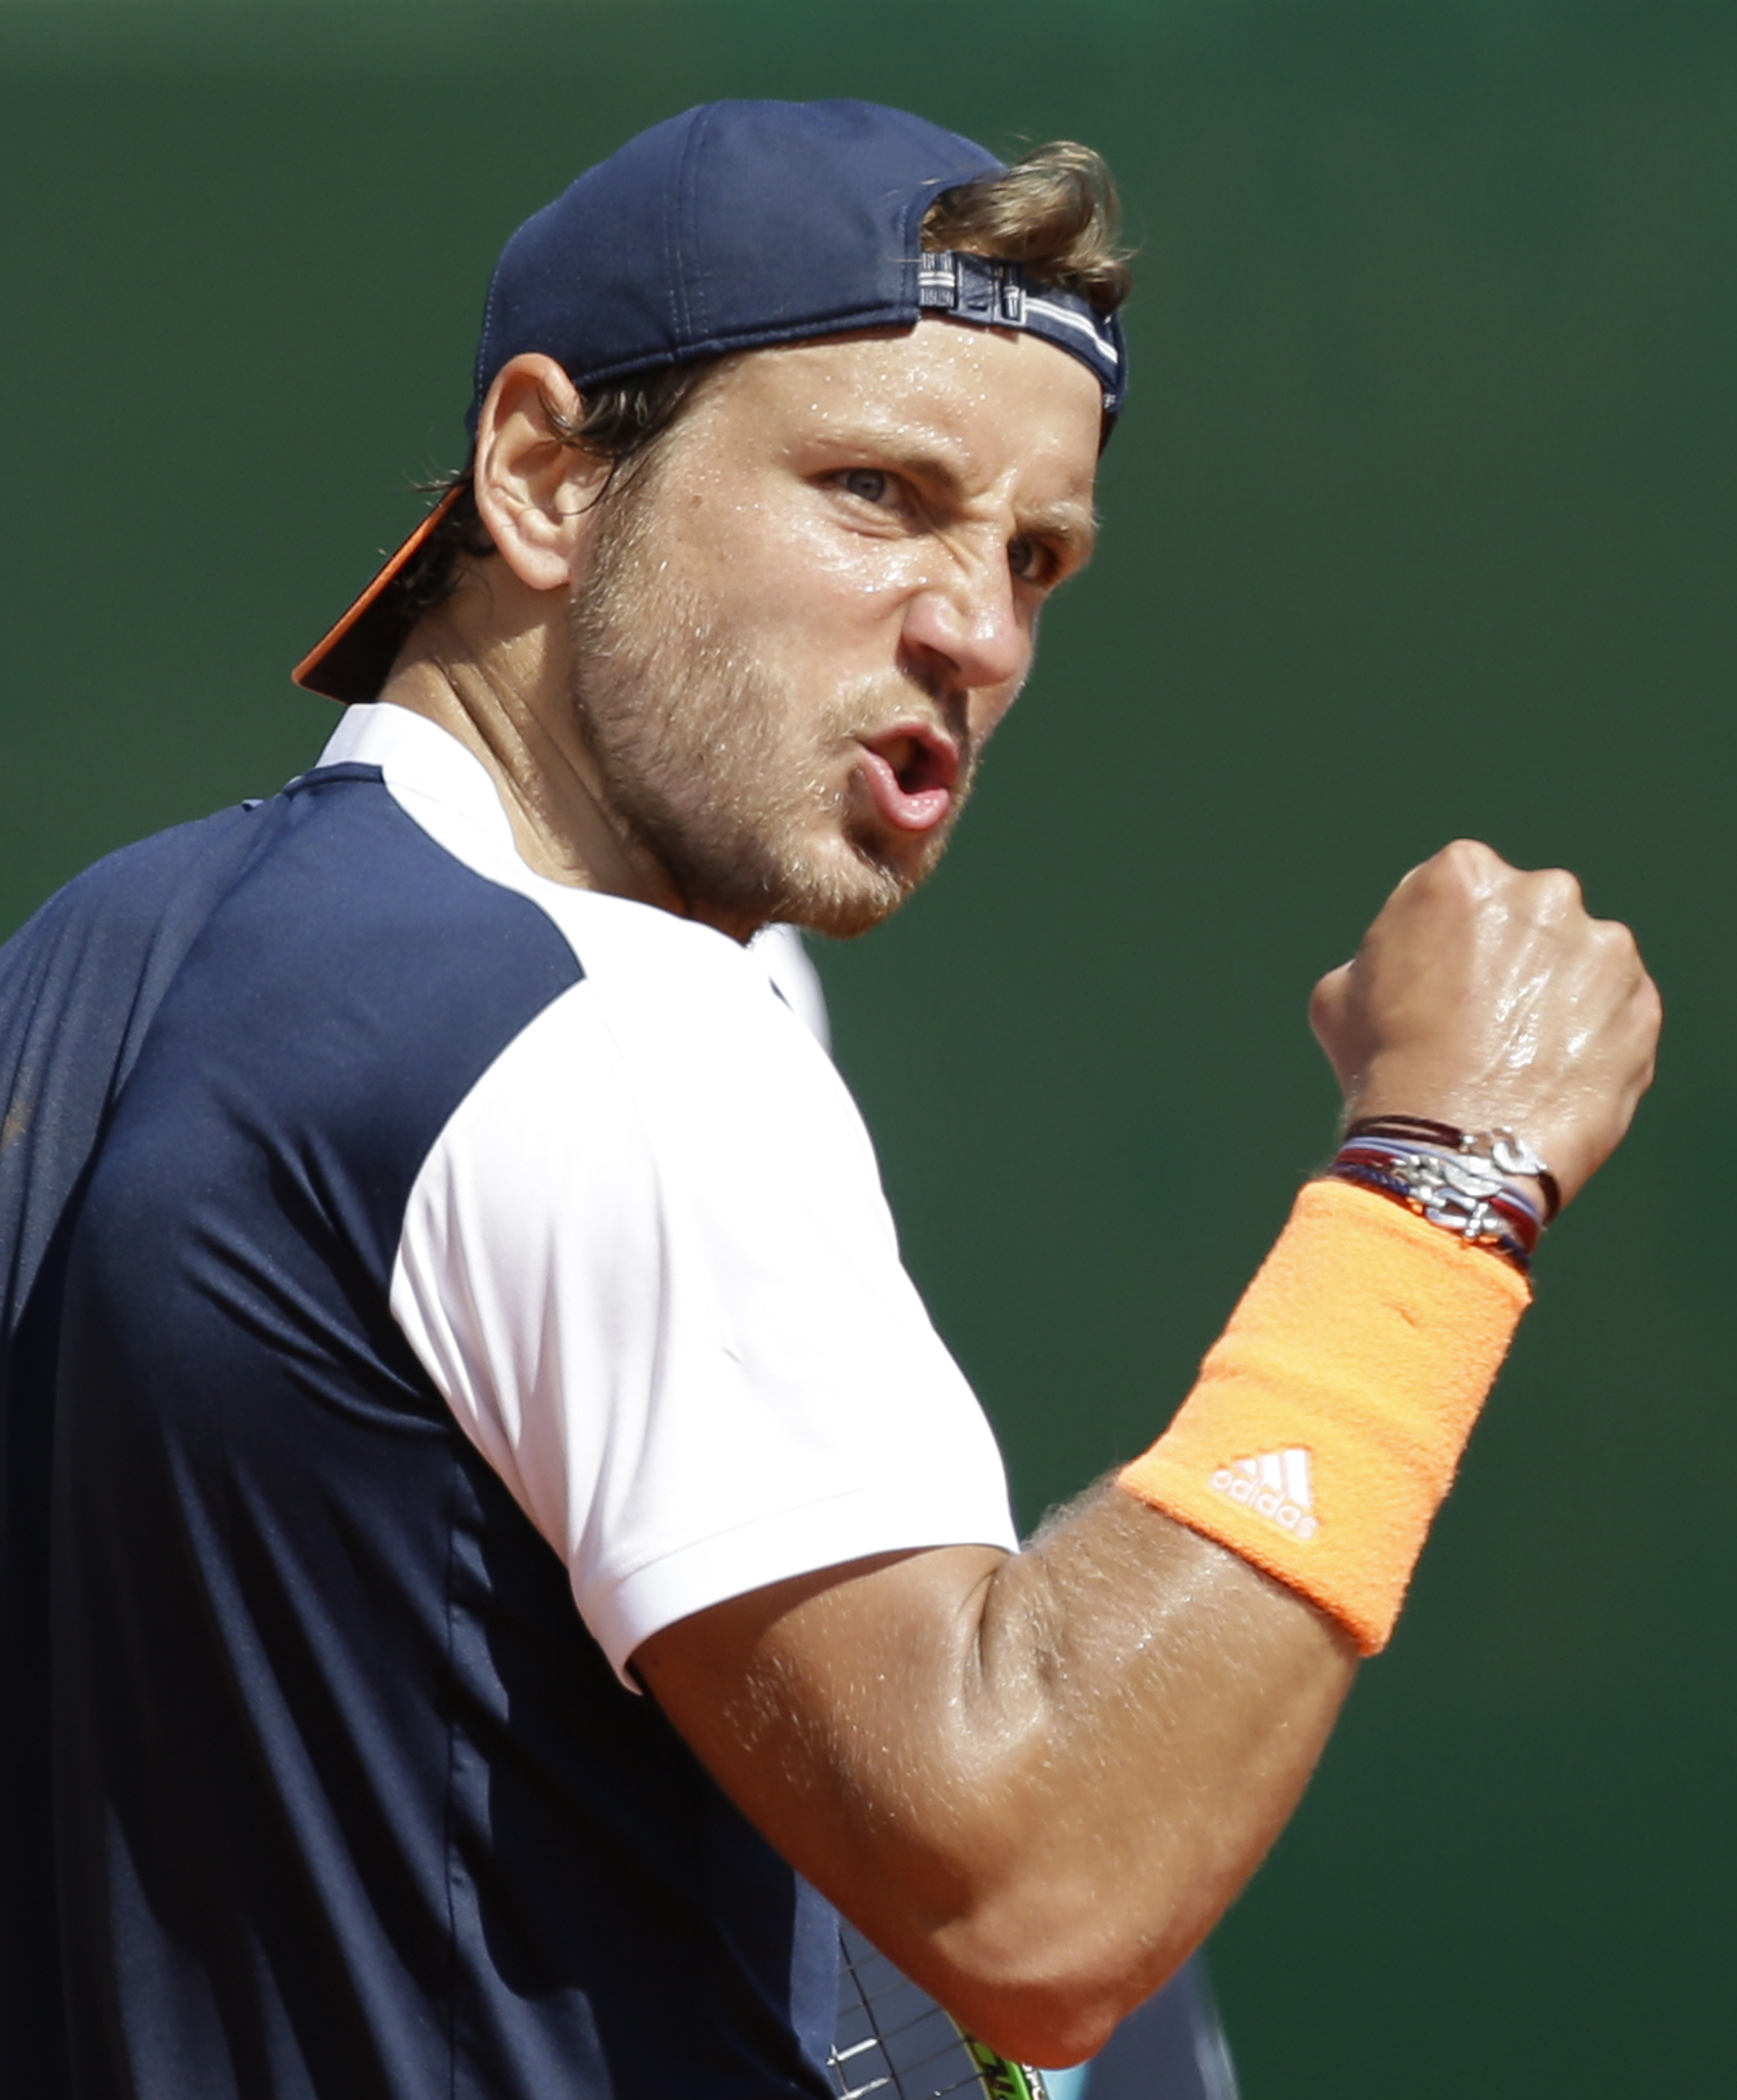 France's Lucas Pouille clenches his fist after winning a point against Spain's Albert Ramos-Vinolas during their semifinal match of the Monte Carlo Tennis Masters tournament in Monaco, Saturday, April, 22, 2017. (AP Photo/Claude Paris)